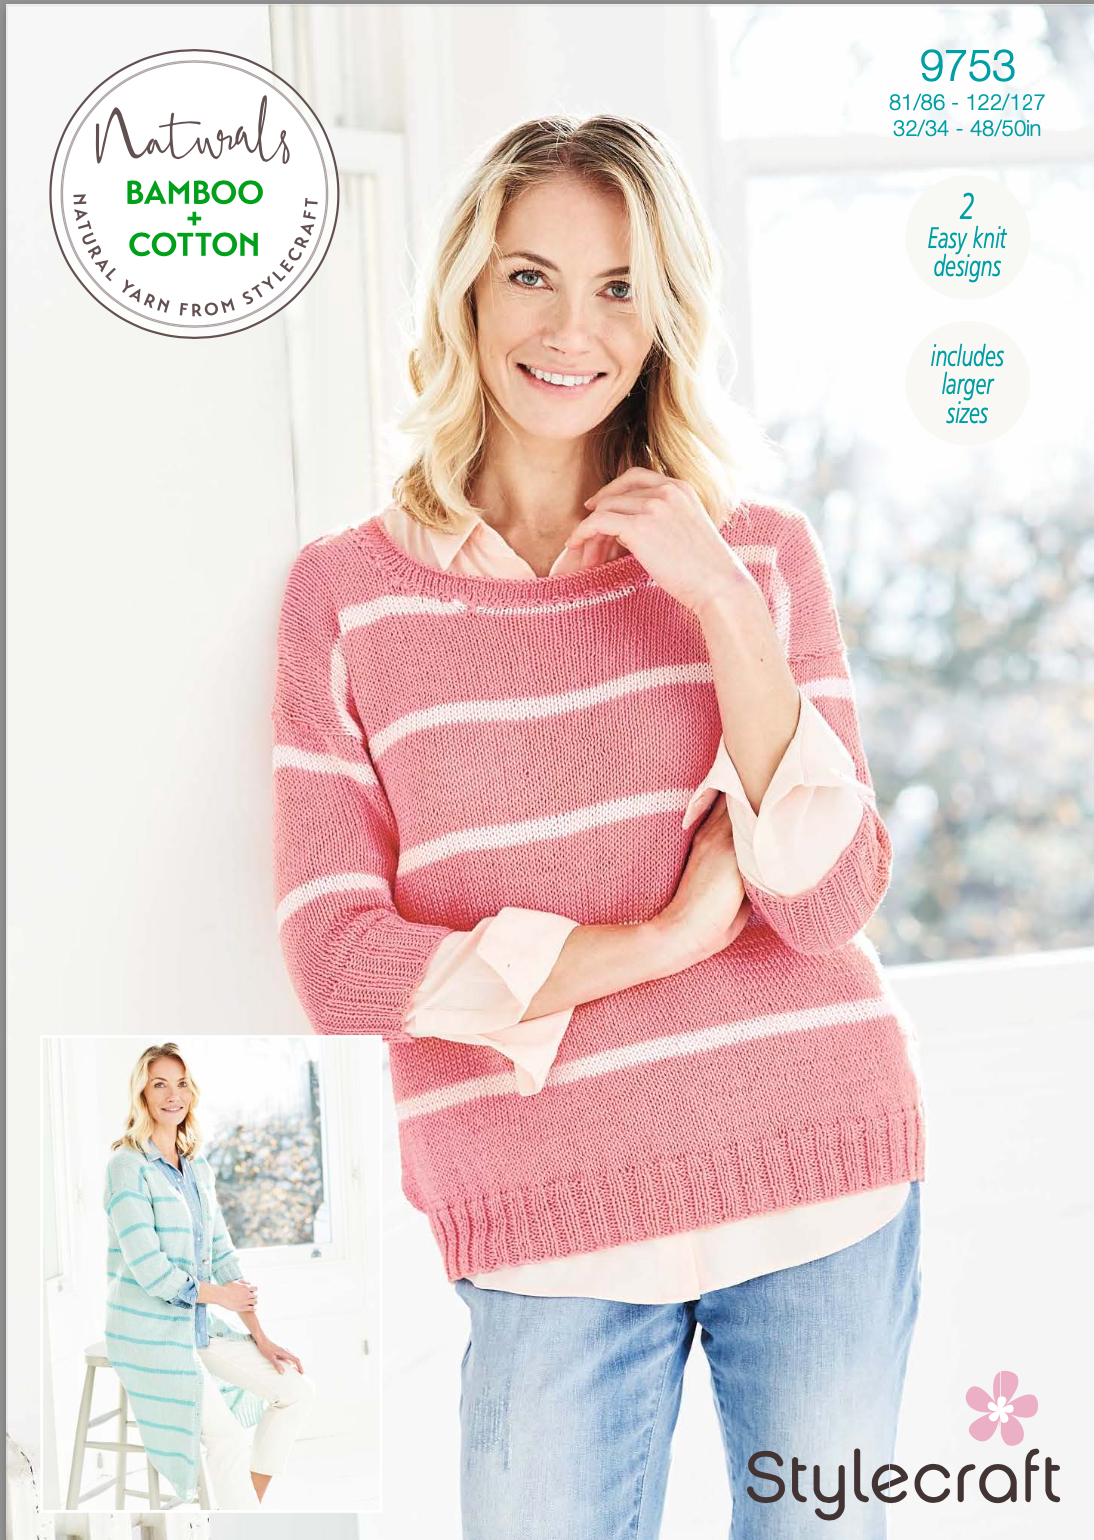 Stylecraft Pattern Naturals Bamboo+Cotton 9753 (download) product image